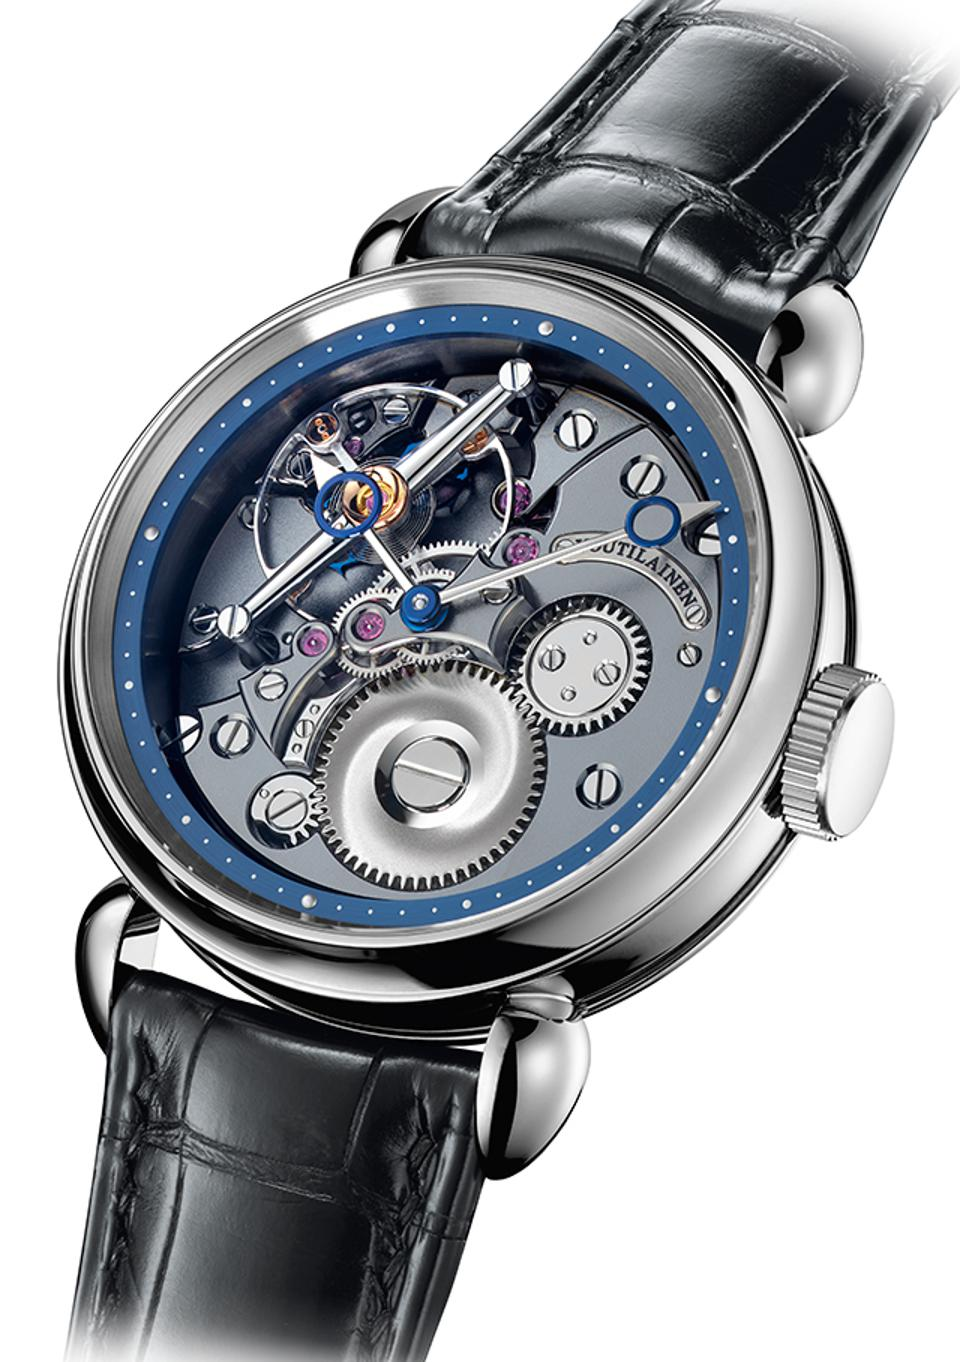 Voutilainen won the Men's Watch prize for the 28ti, a titanium watch with the movement, including its distinctive large balance wheel, visible on the dial.